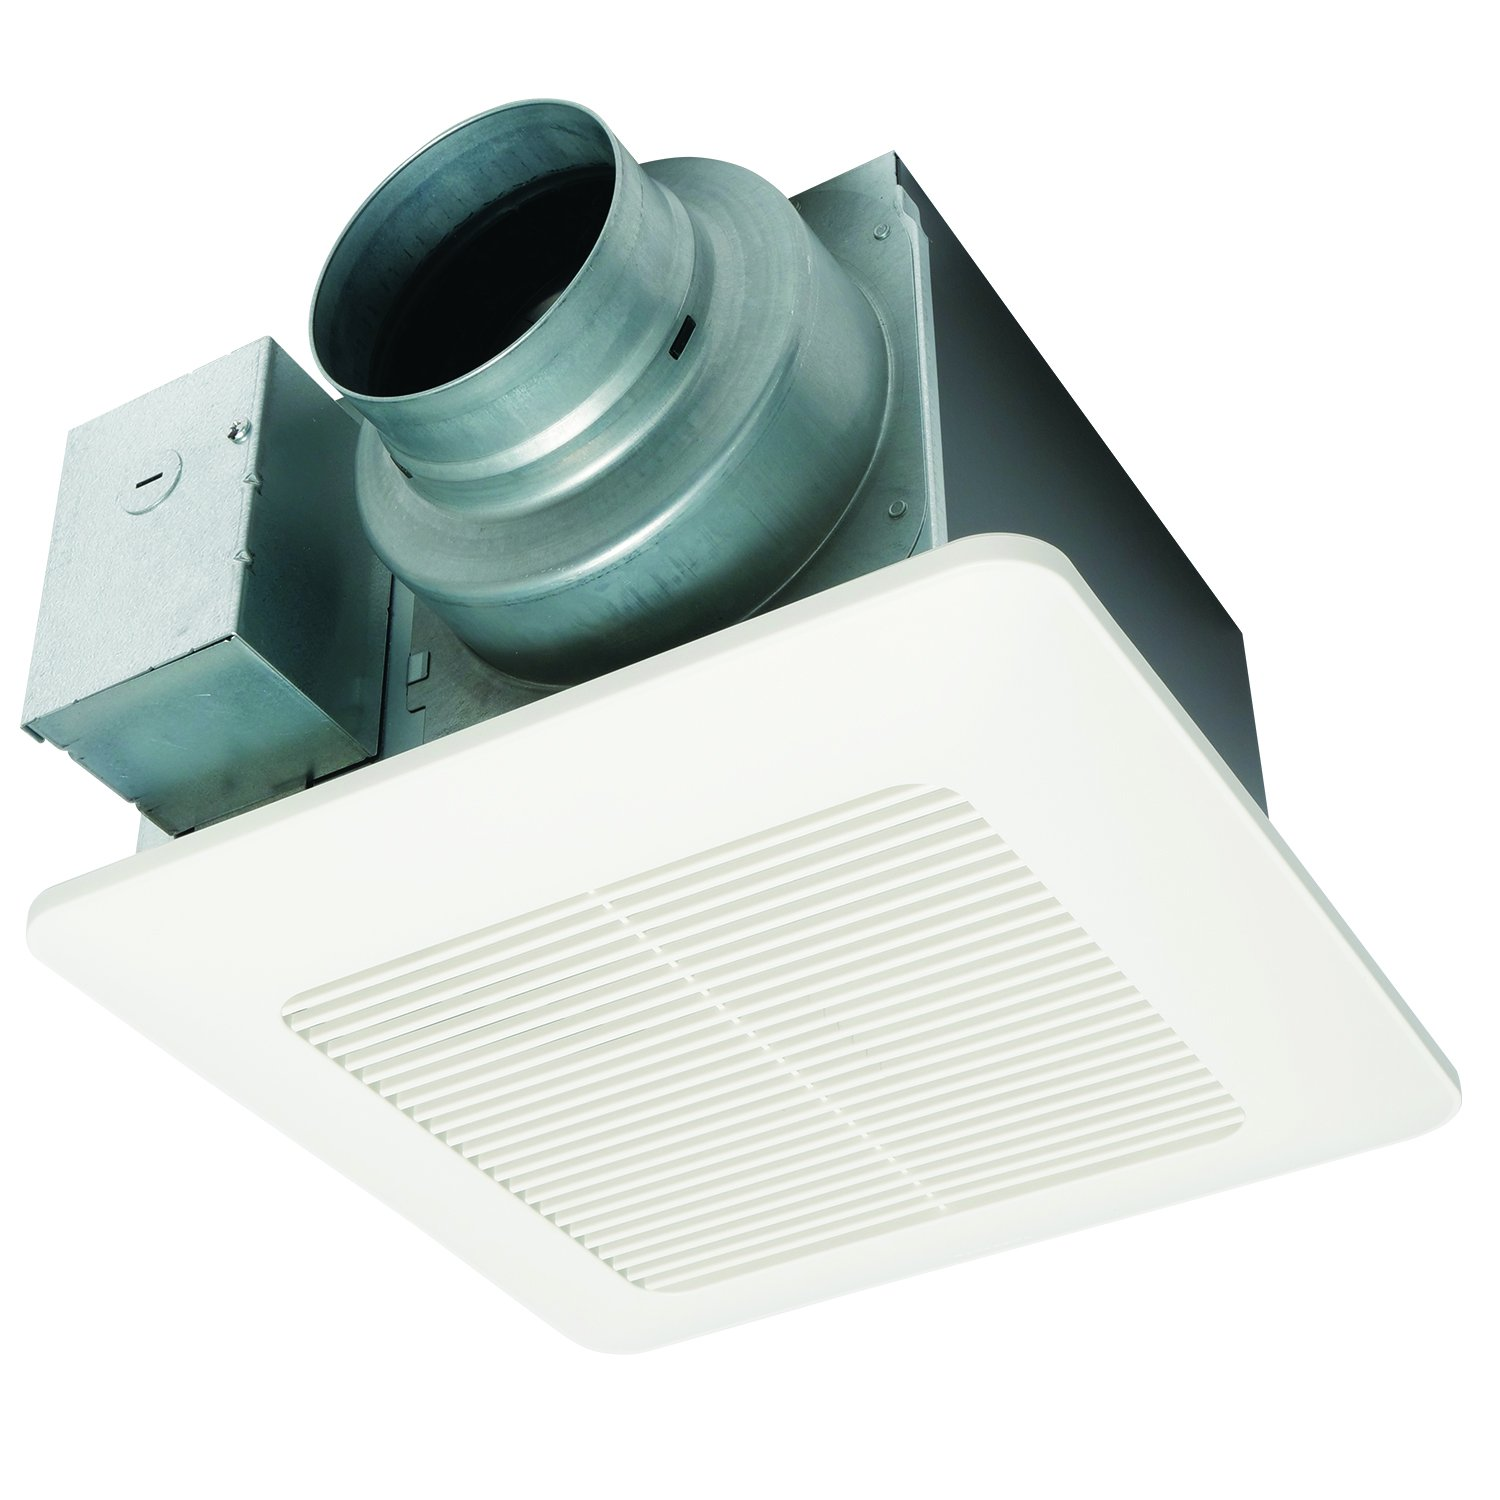 Panasonic FV-0511VQ1 Whisperceiling DC Fan by Panasonic